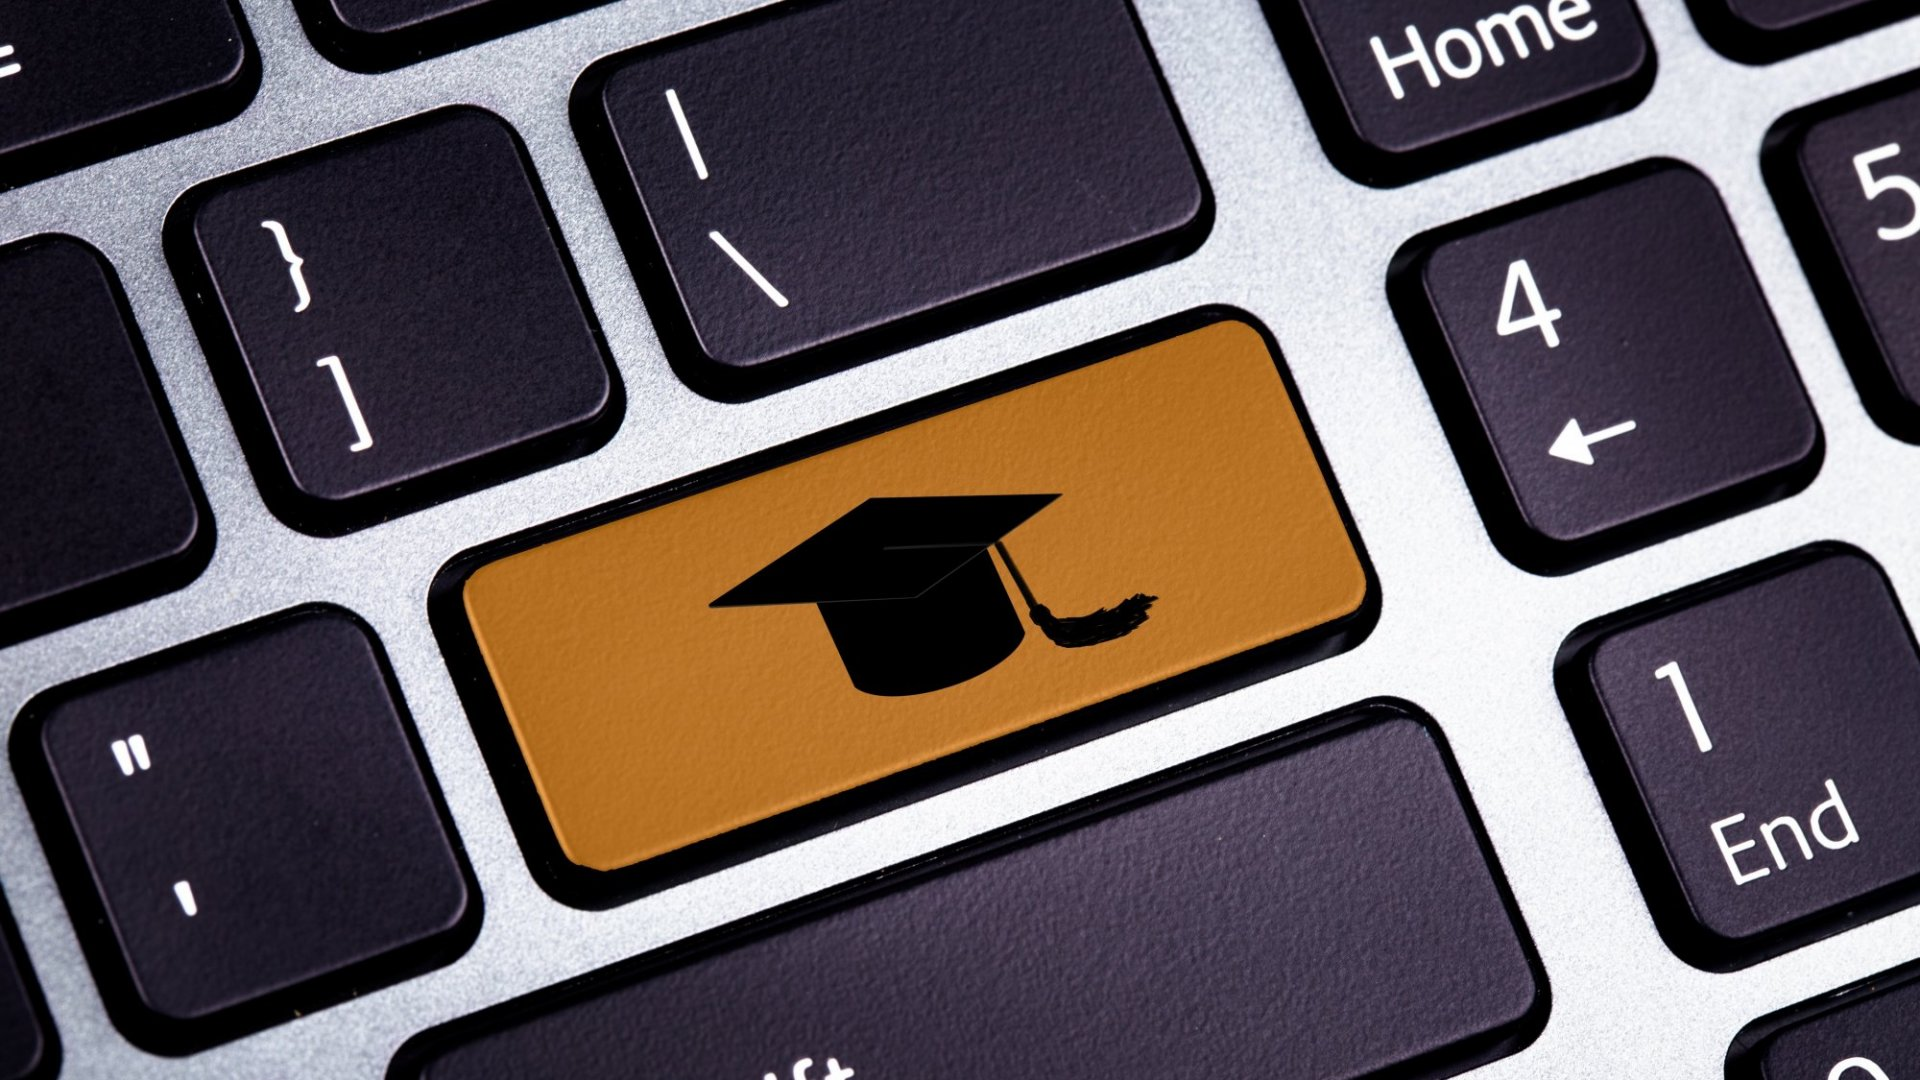 How to Get a Good Job When You Don't Have a College Degree